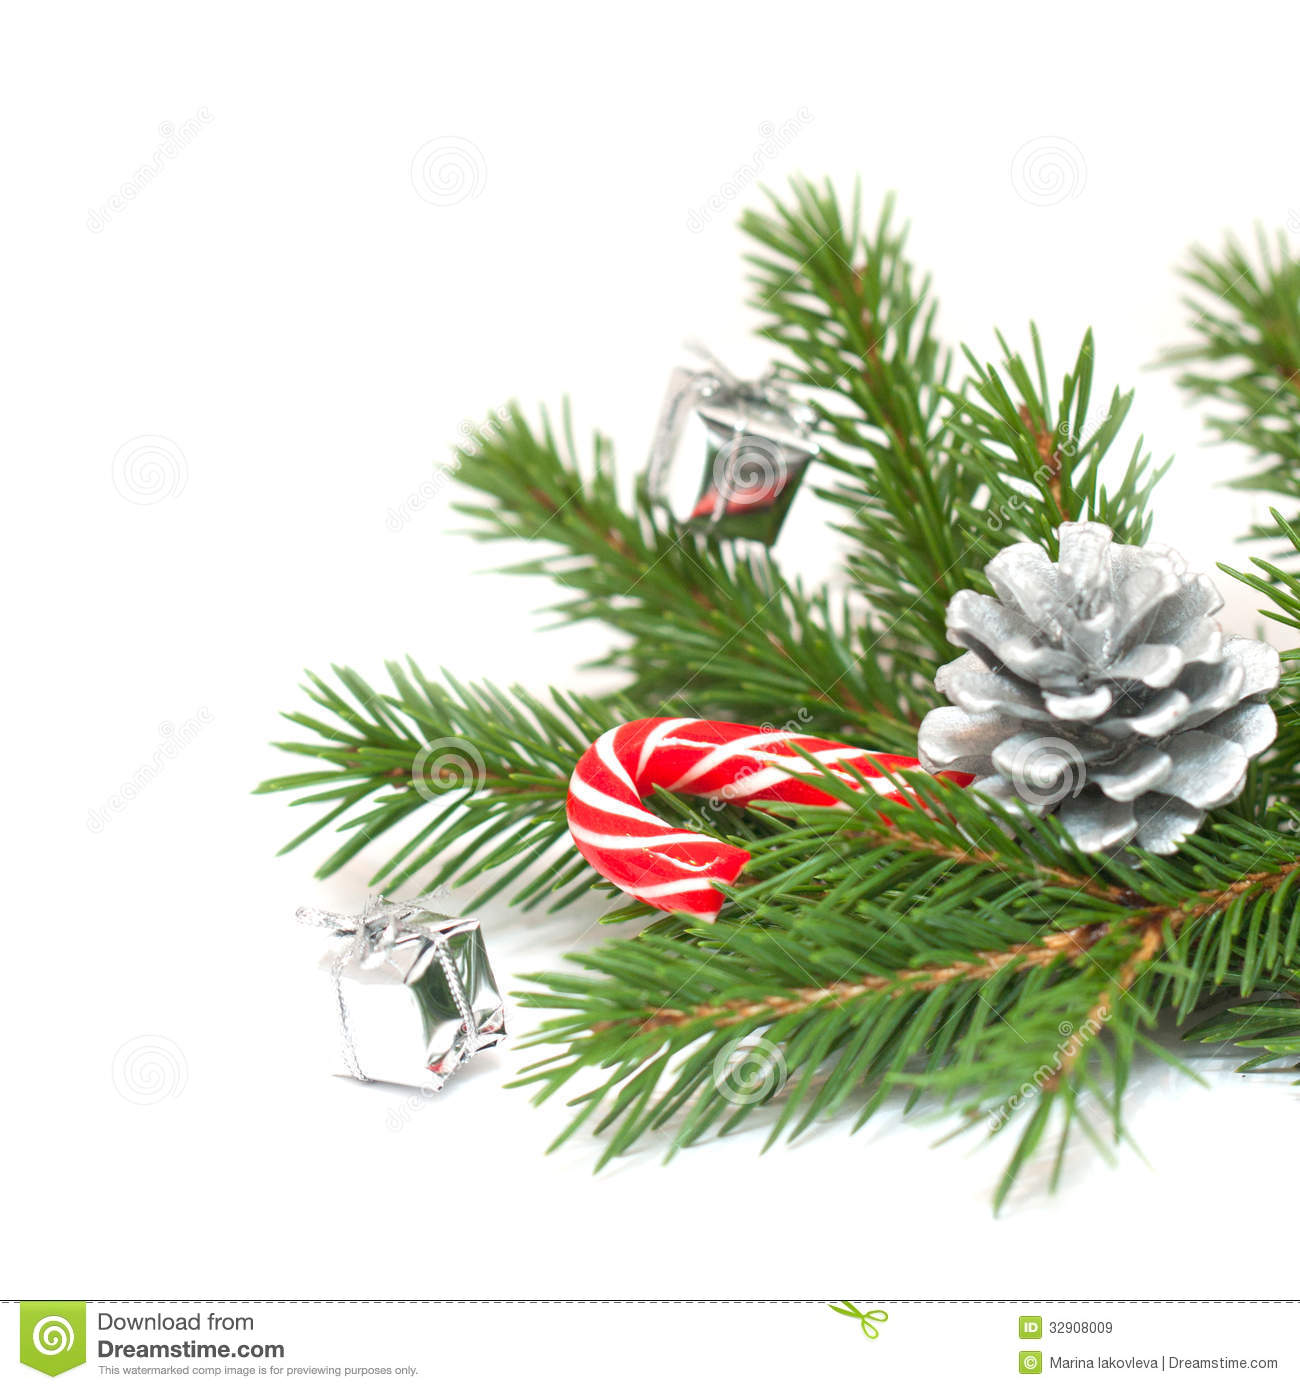 christmas tree branches and decorations - Christmas Tree Branch Decorations